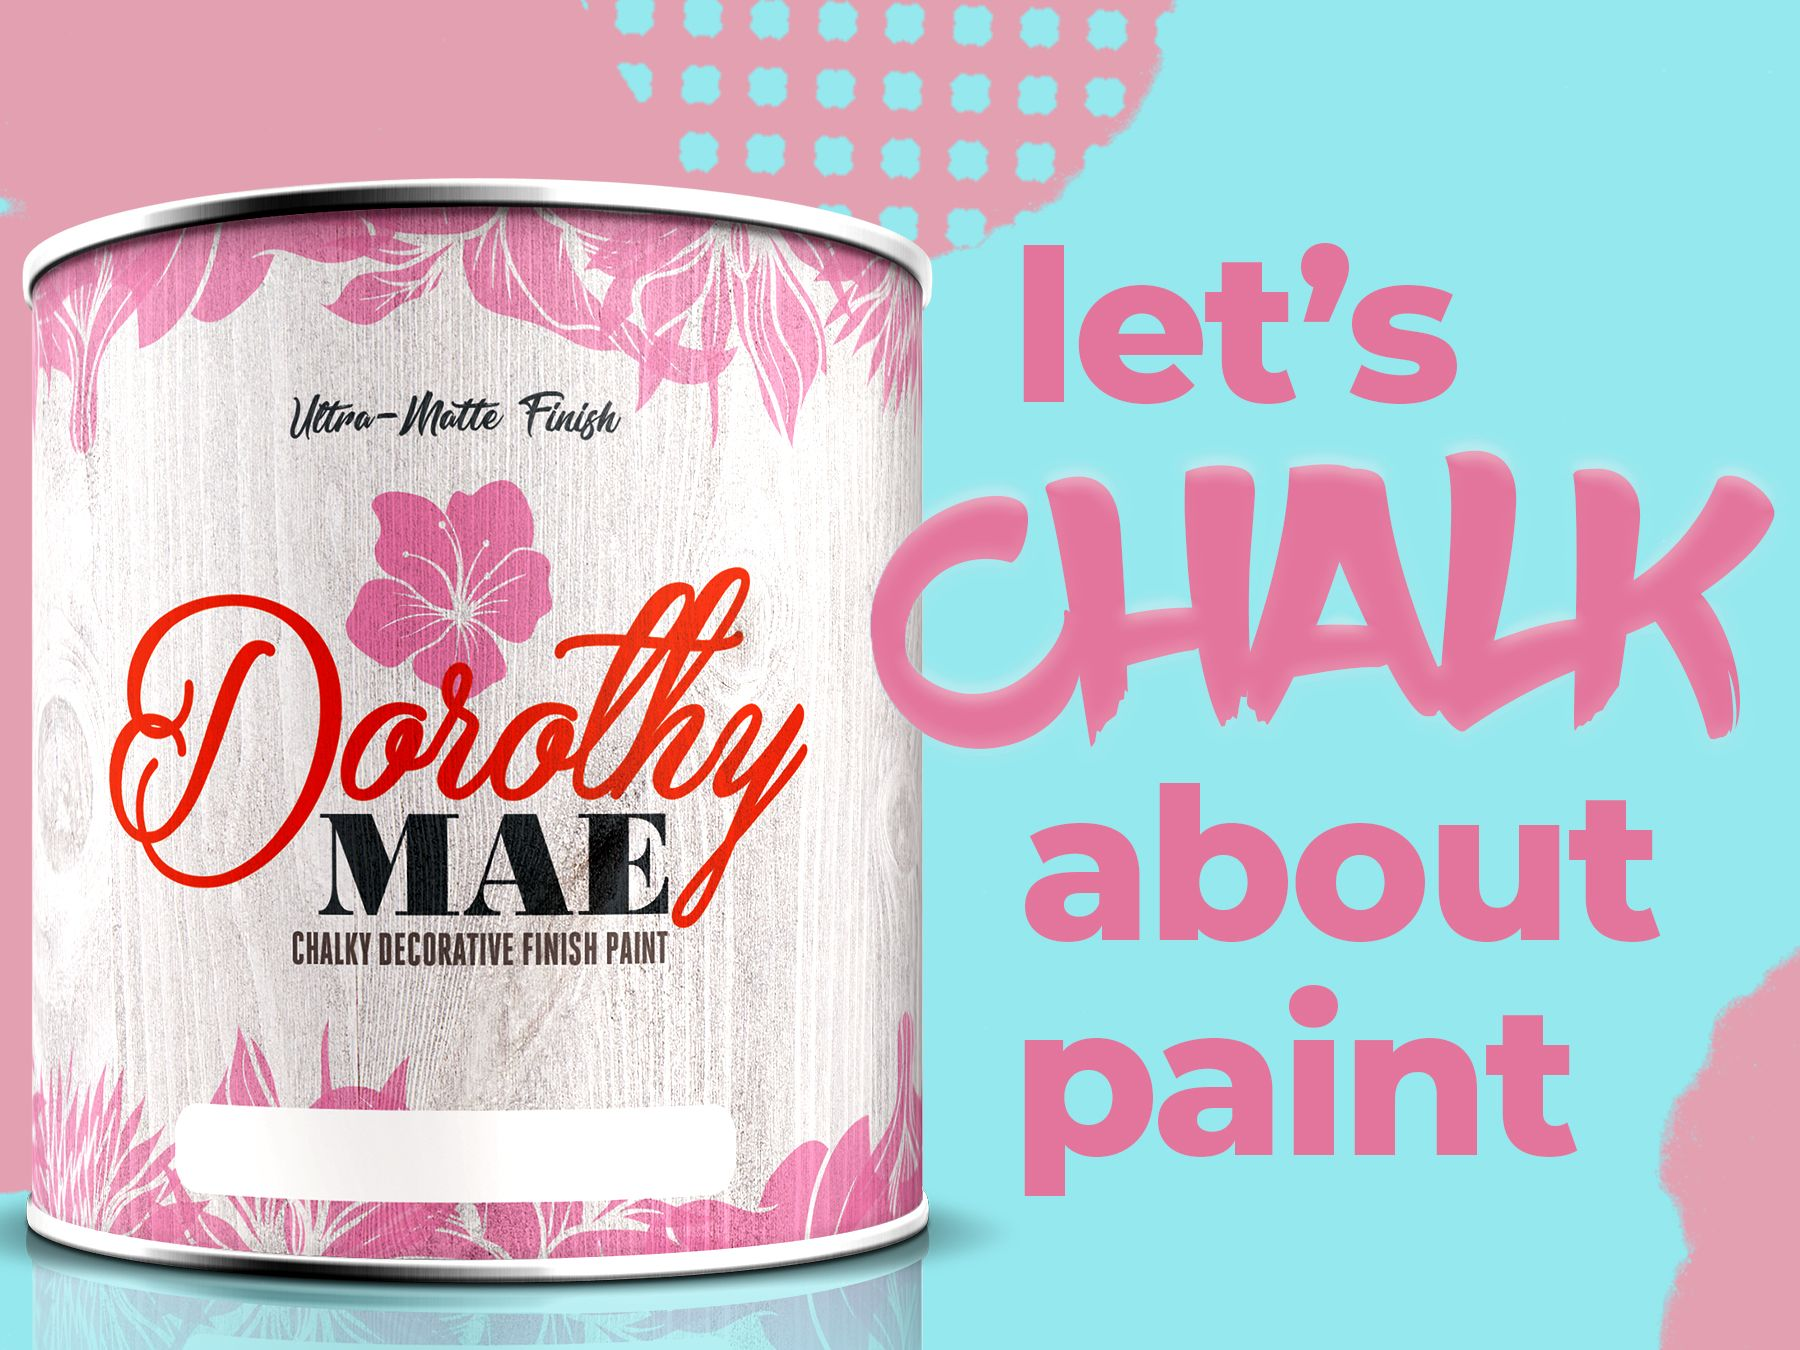 Get crafty with our highly rated Dorothy Mae chalk paint! Easy to use, no priming, and in just one coat, paint your project to your desired look. Dorothy Mae makes a fine addition to your craft counter. See our Dorothy Mae Chalk Paint Quart Kit which includes a quart of Dorothy Mae Chalk Paint, a paint brush, a craft paint cup, and a sanding sponge. . . . . #diychalkpaint #diypainting #okcpaint #diyhomepaint #chalkpainting #chalkpaintedfurniture #chalkpainted #dorothymae